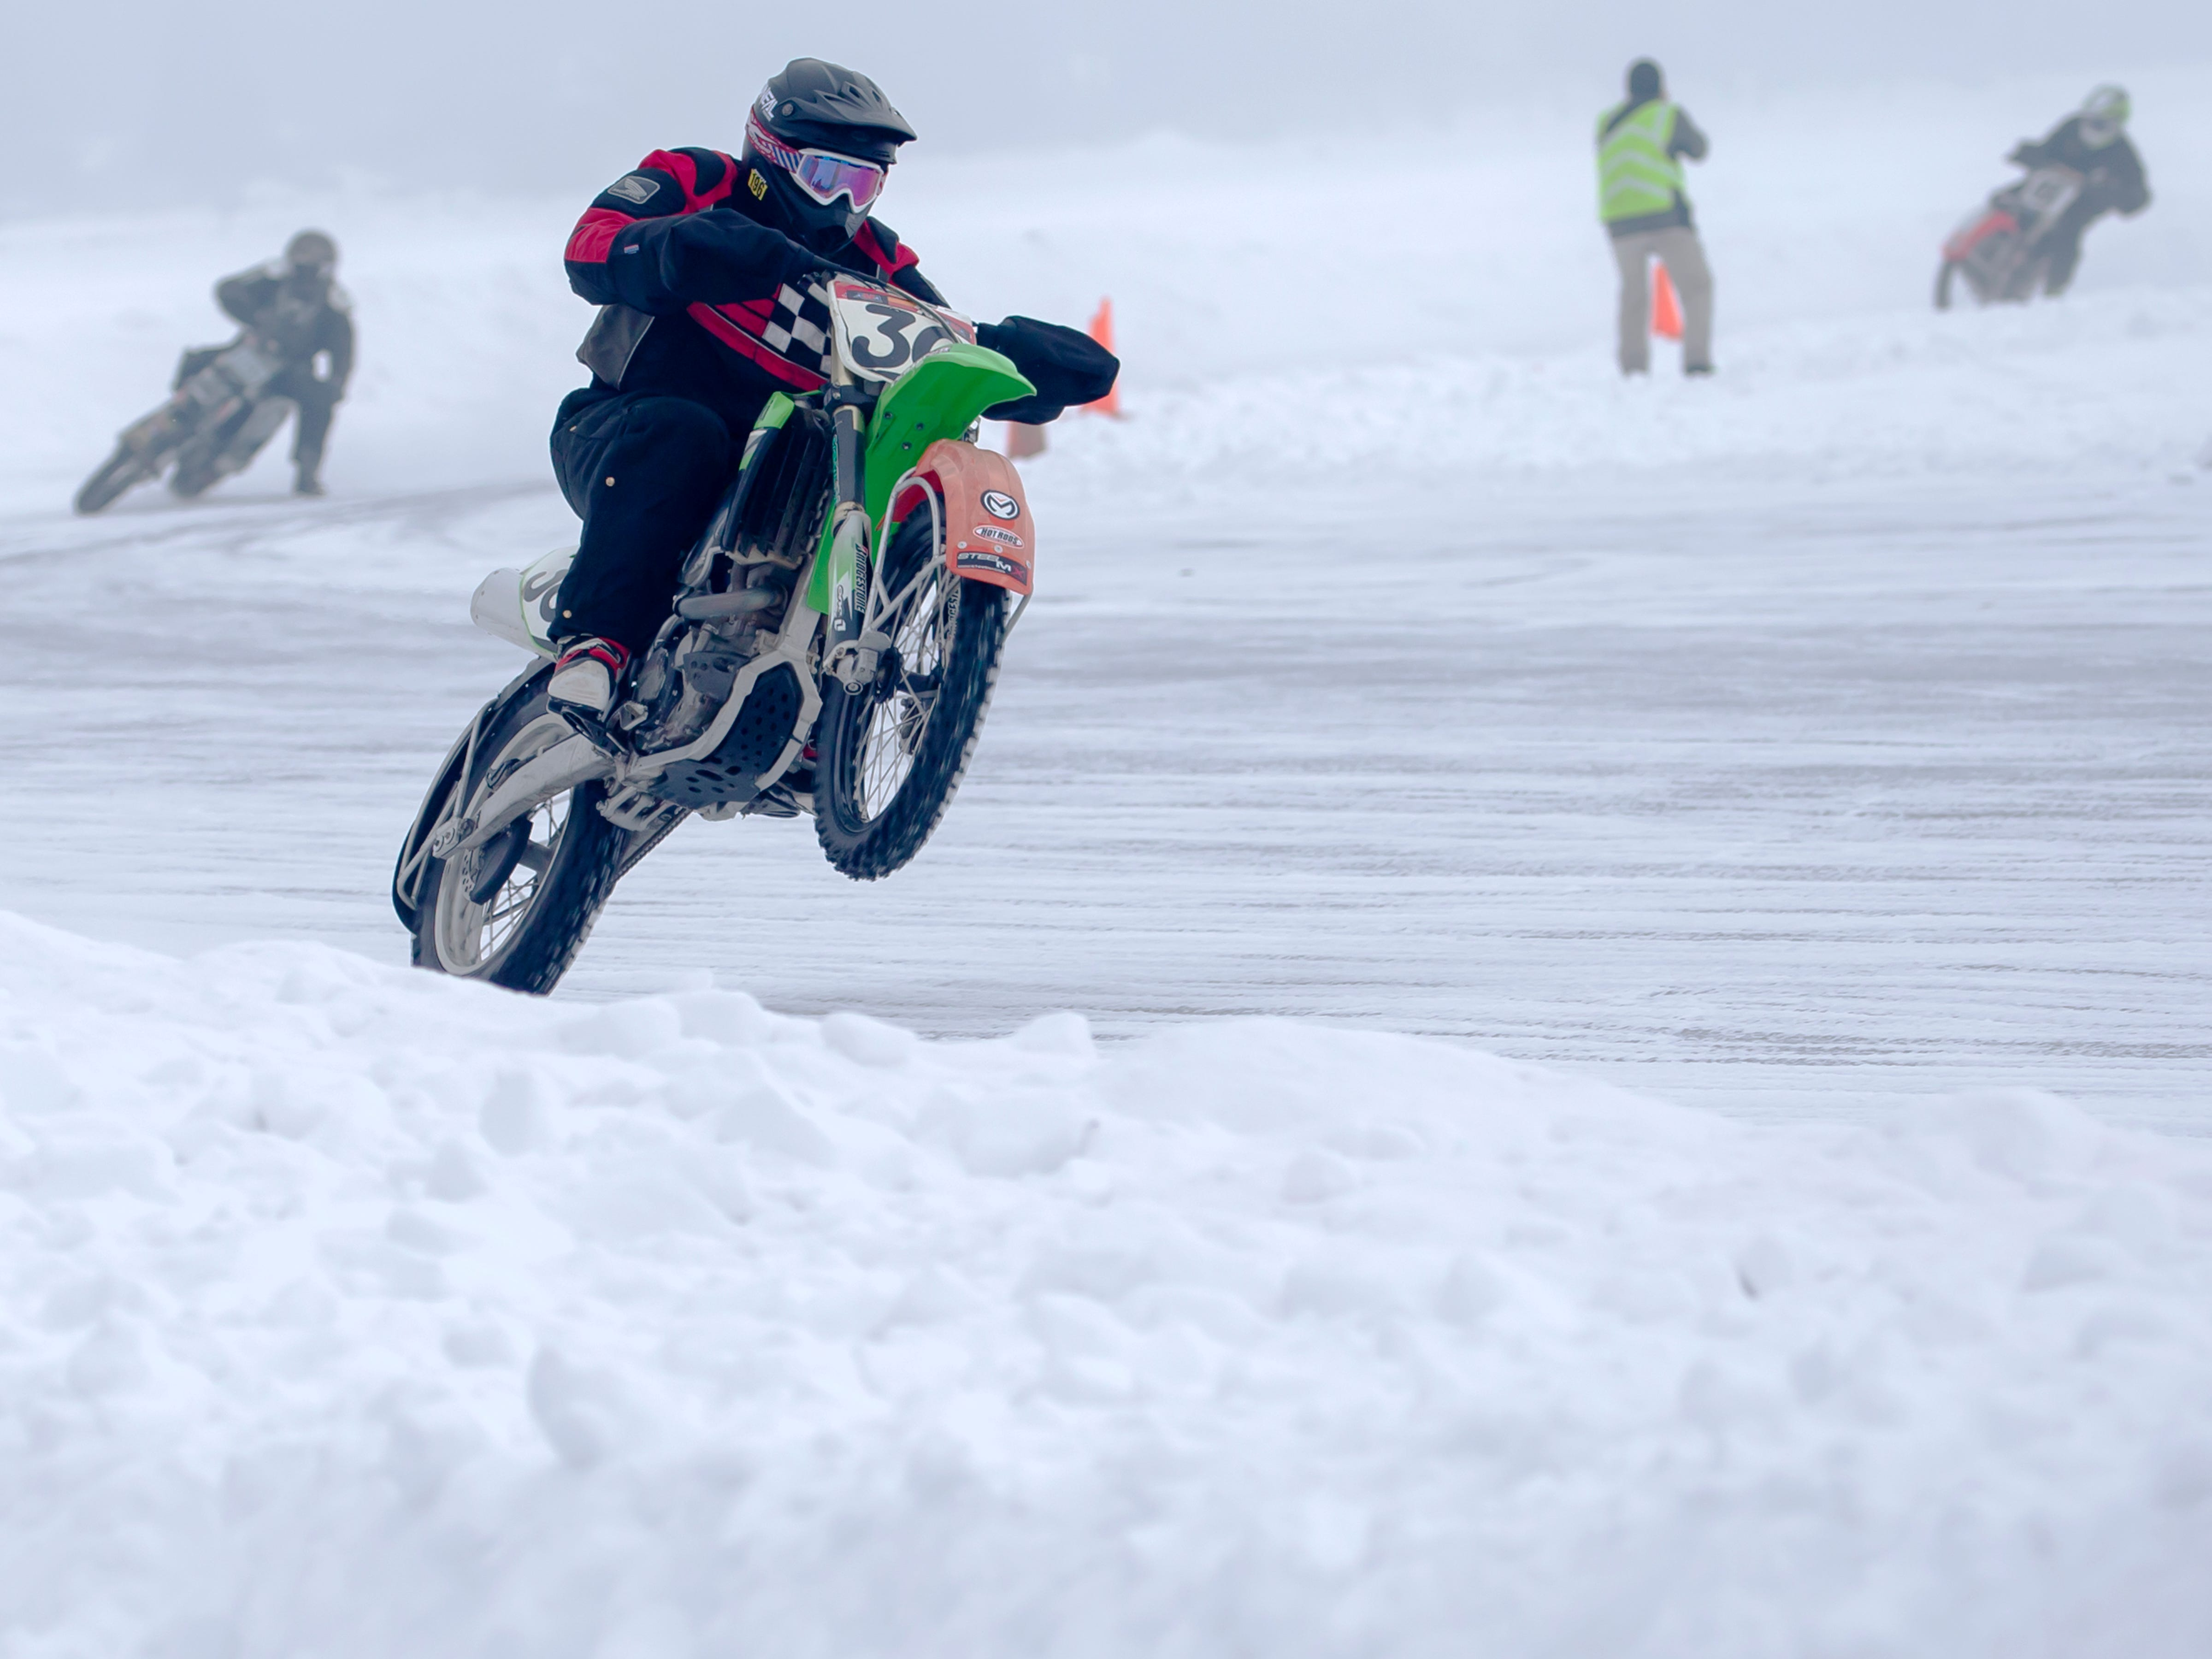 Brock Schwarzenbach of Beaver Dam finishes first in a class during the races held at the Otter Street Fishing Club Winter Fisheree at Miller's Bay in Menominee Park on Saturday, Feb. 2, 2019.